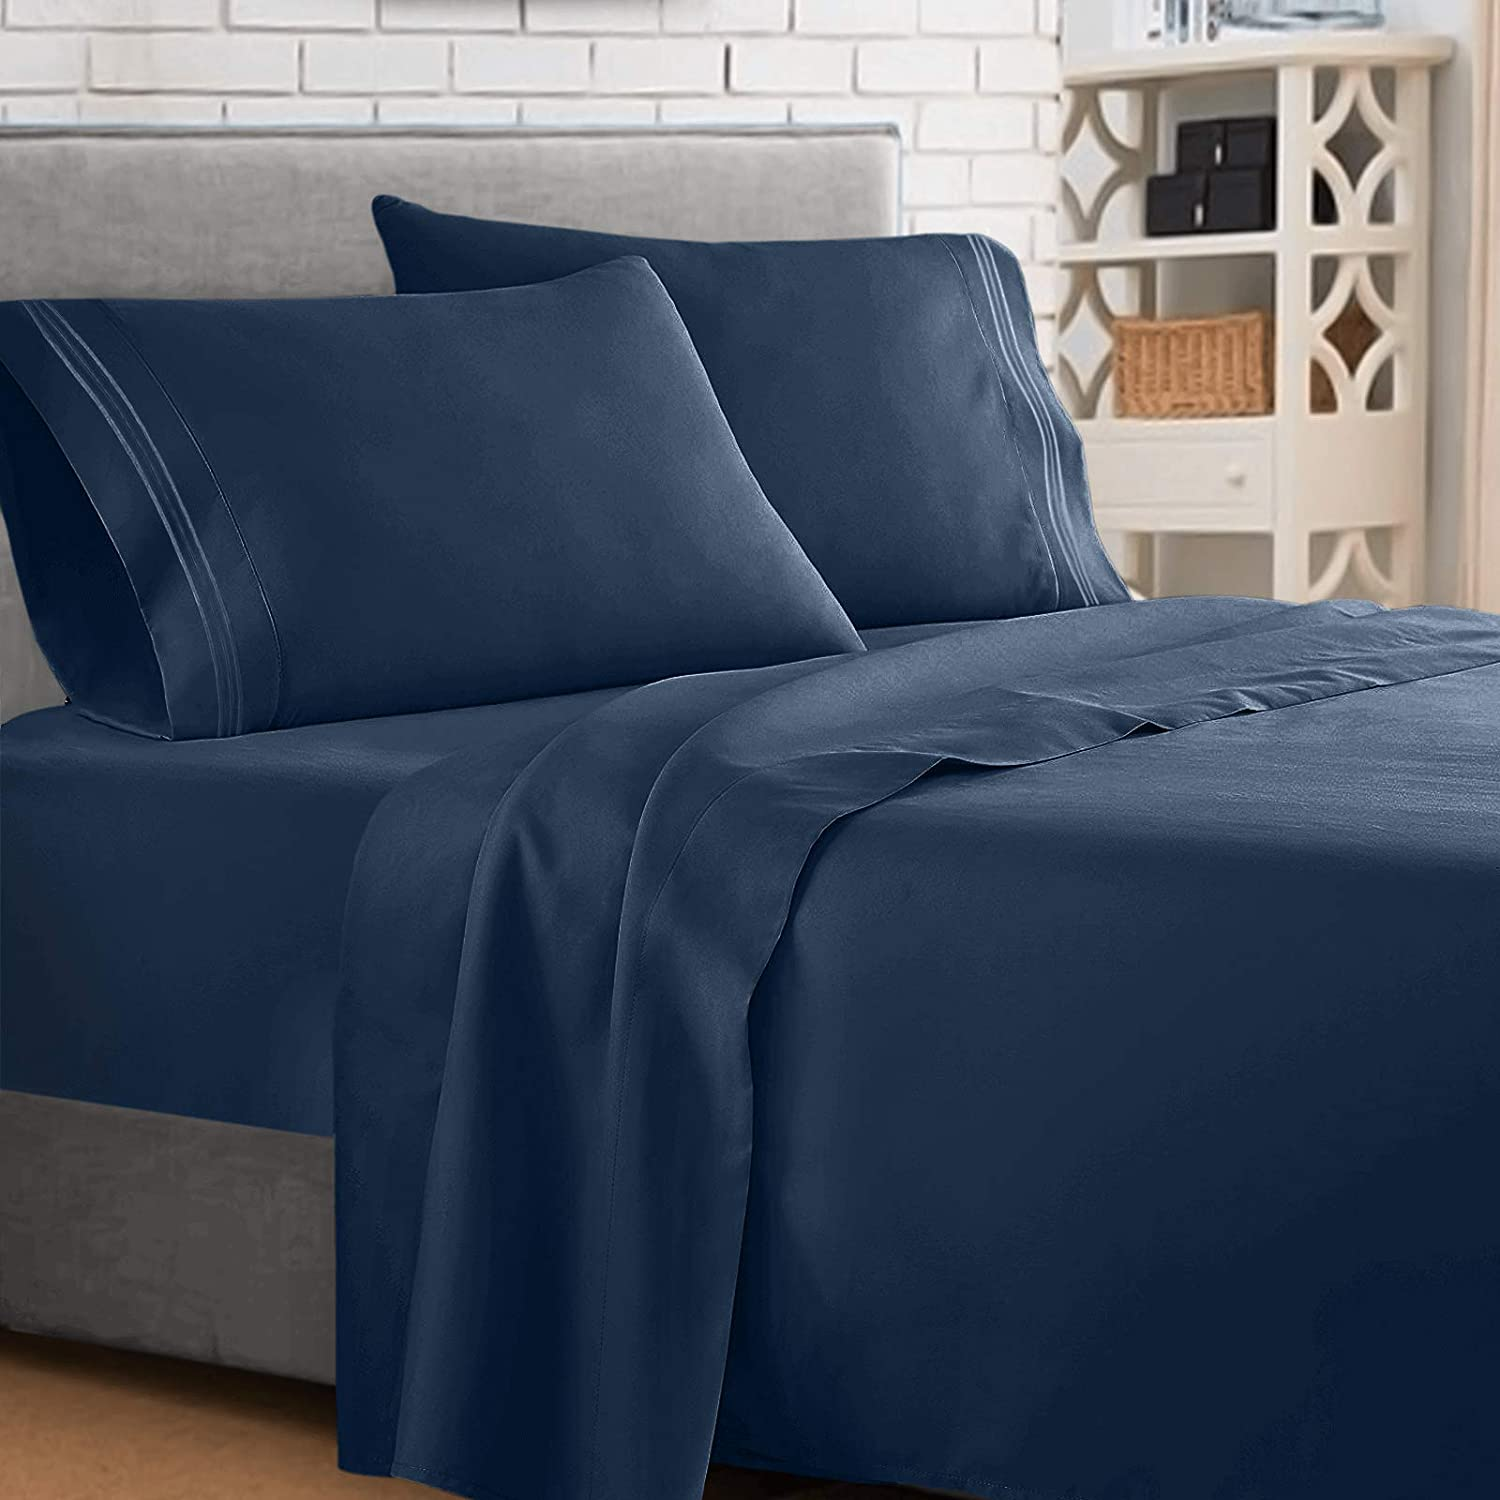 Clara Clark ® Supreme 1500 Collection 4pc Bed Sheet Set - Cal King Size, Navy Blue